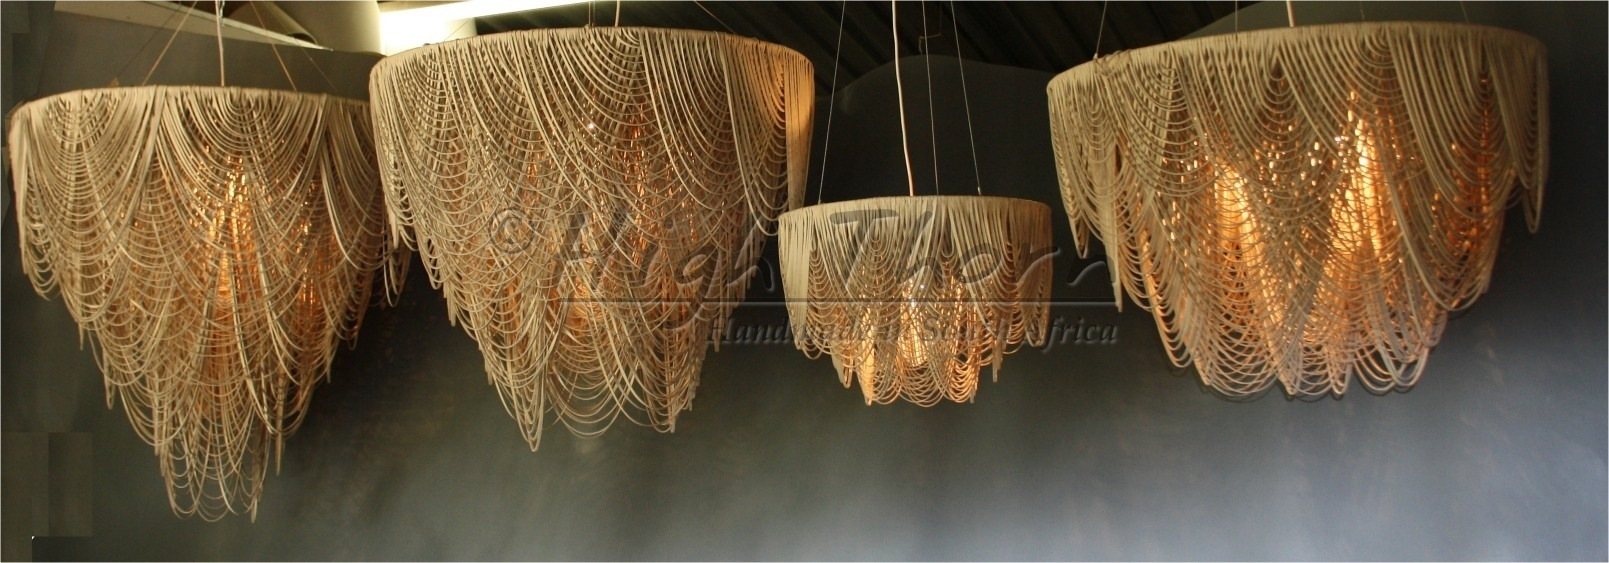 High thorn handmade in south africa lighting furniture home high thorn handmade in south africa lighting furniture home accessories mozeypictures Gallery